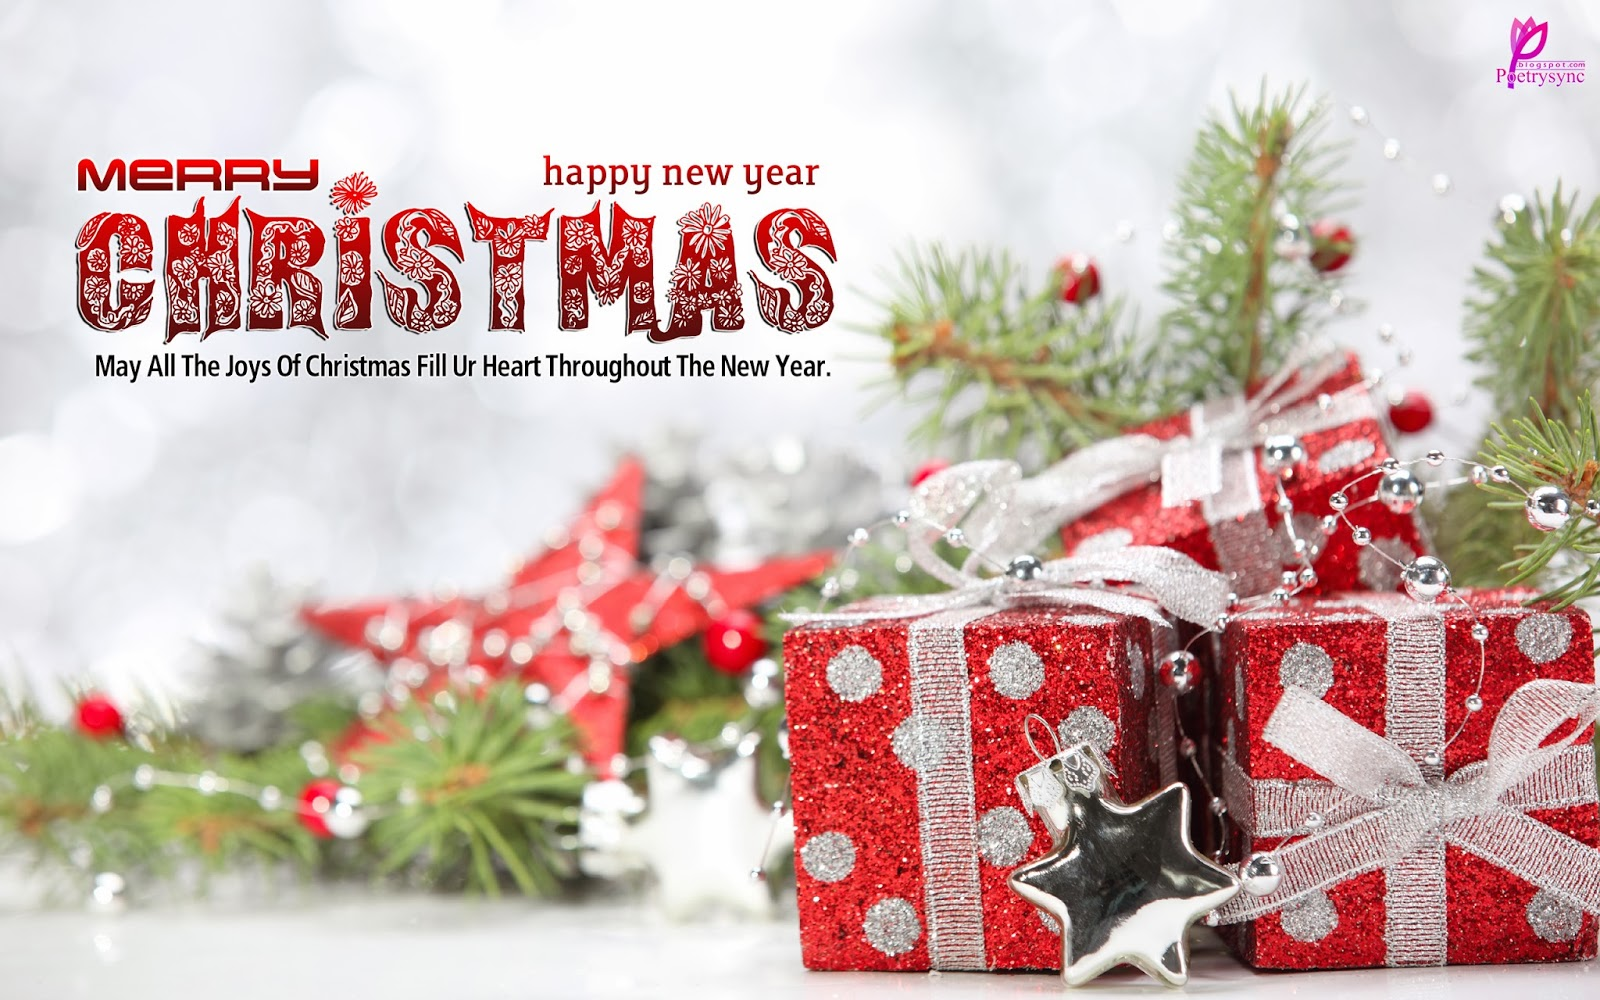 Merry Christmas 2015 Hd Wallpapers Wallpaperes Elite 1600x1000